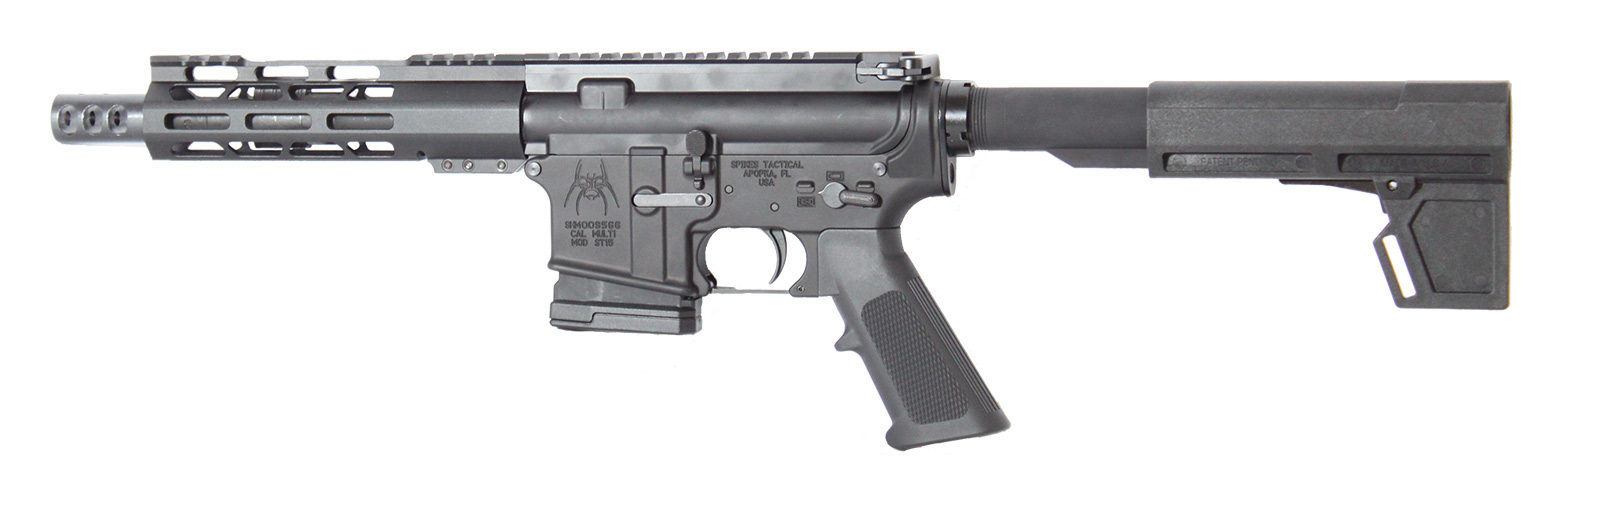 ar15-complete-pistol-7-5-inches-223-wylde-m-lok-rail-spikes-tactical-lower-200212